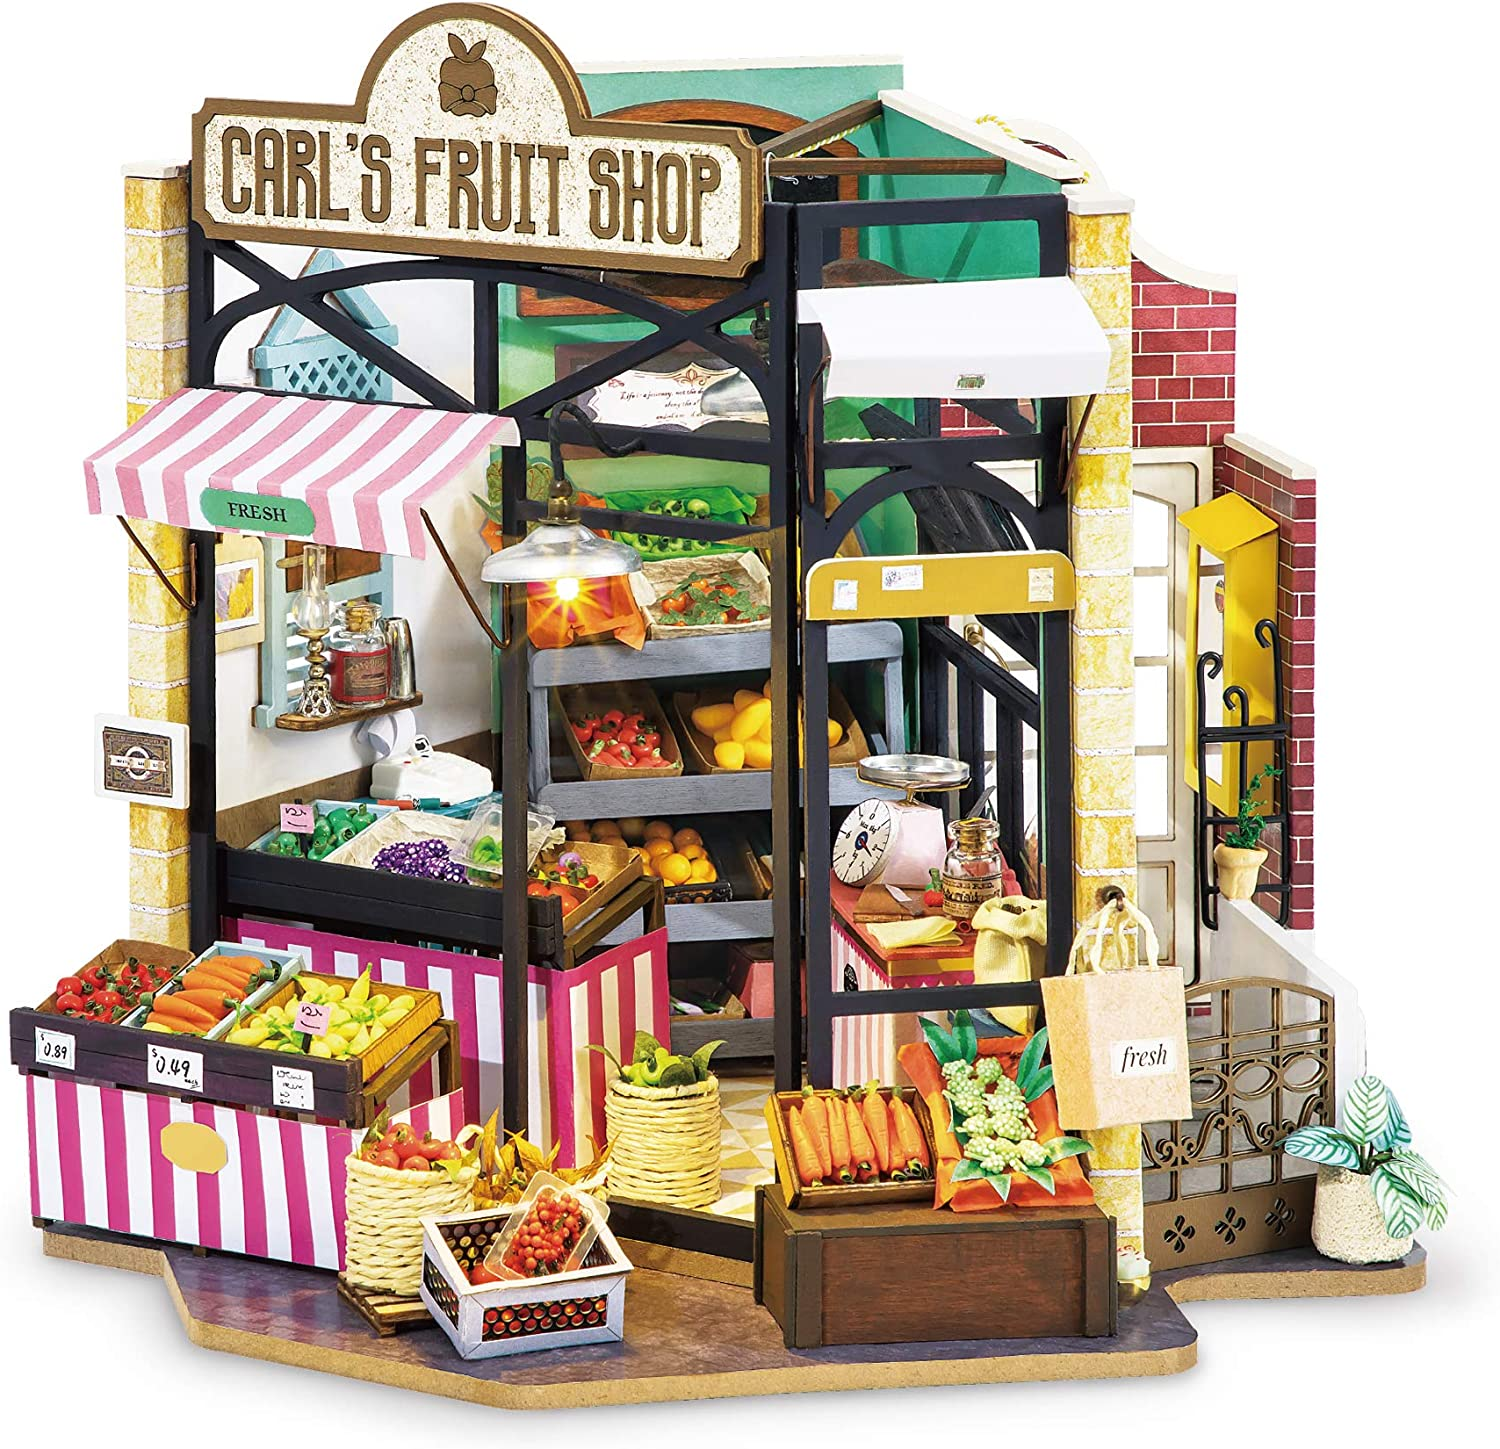 Hands Craft DG142, DIY 3D Wooden Miniature Dollhouse Build Your own Crafting Kit with Real LED Lights, Fun Educational STEM Hobby Project for Kids (14+) and Adults. (Carl's Fruit Shop)